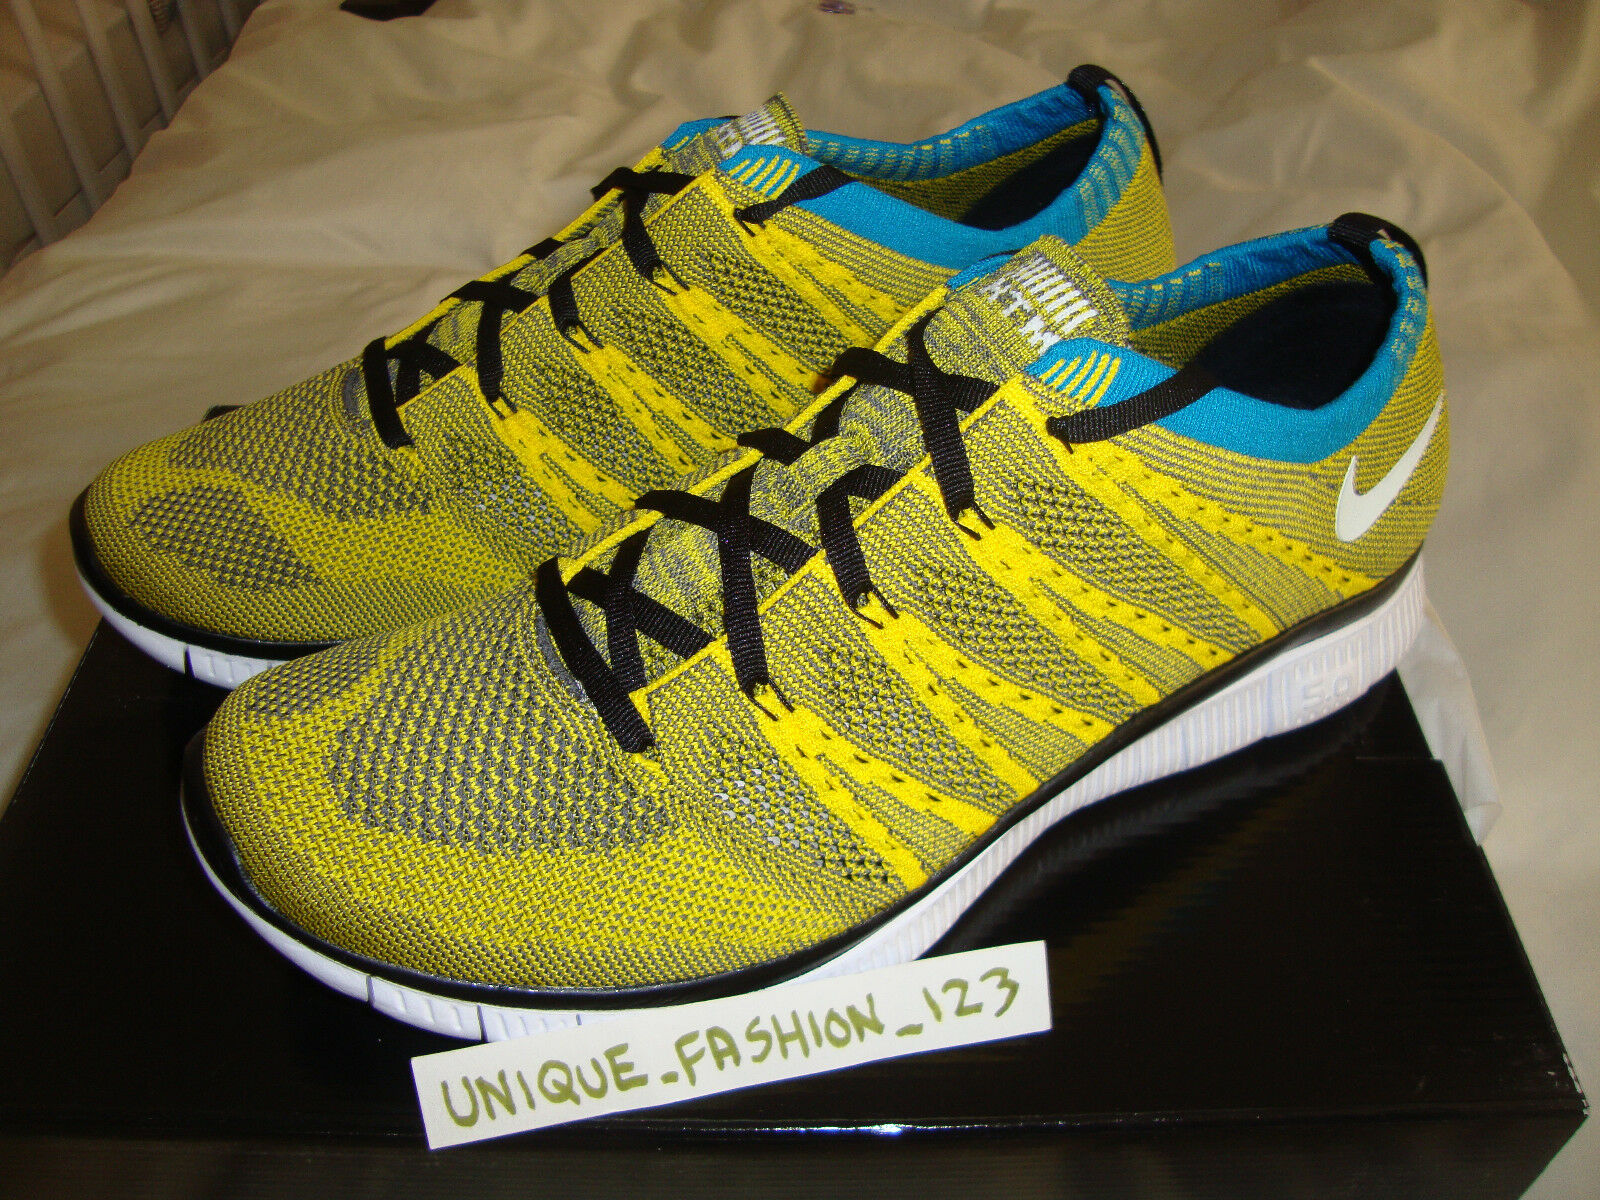 Nike libera flyknit / sp tour giallo noi mix 2013 city - chukka